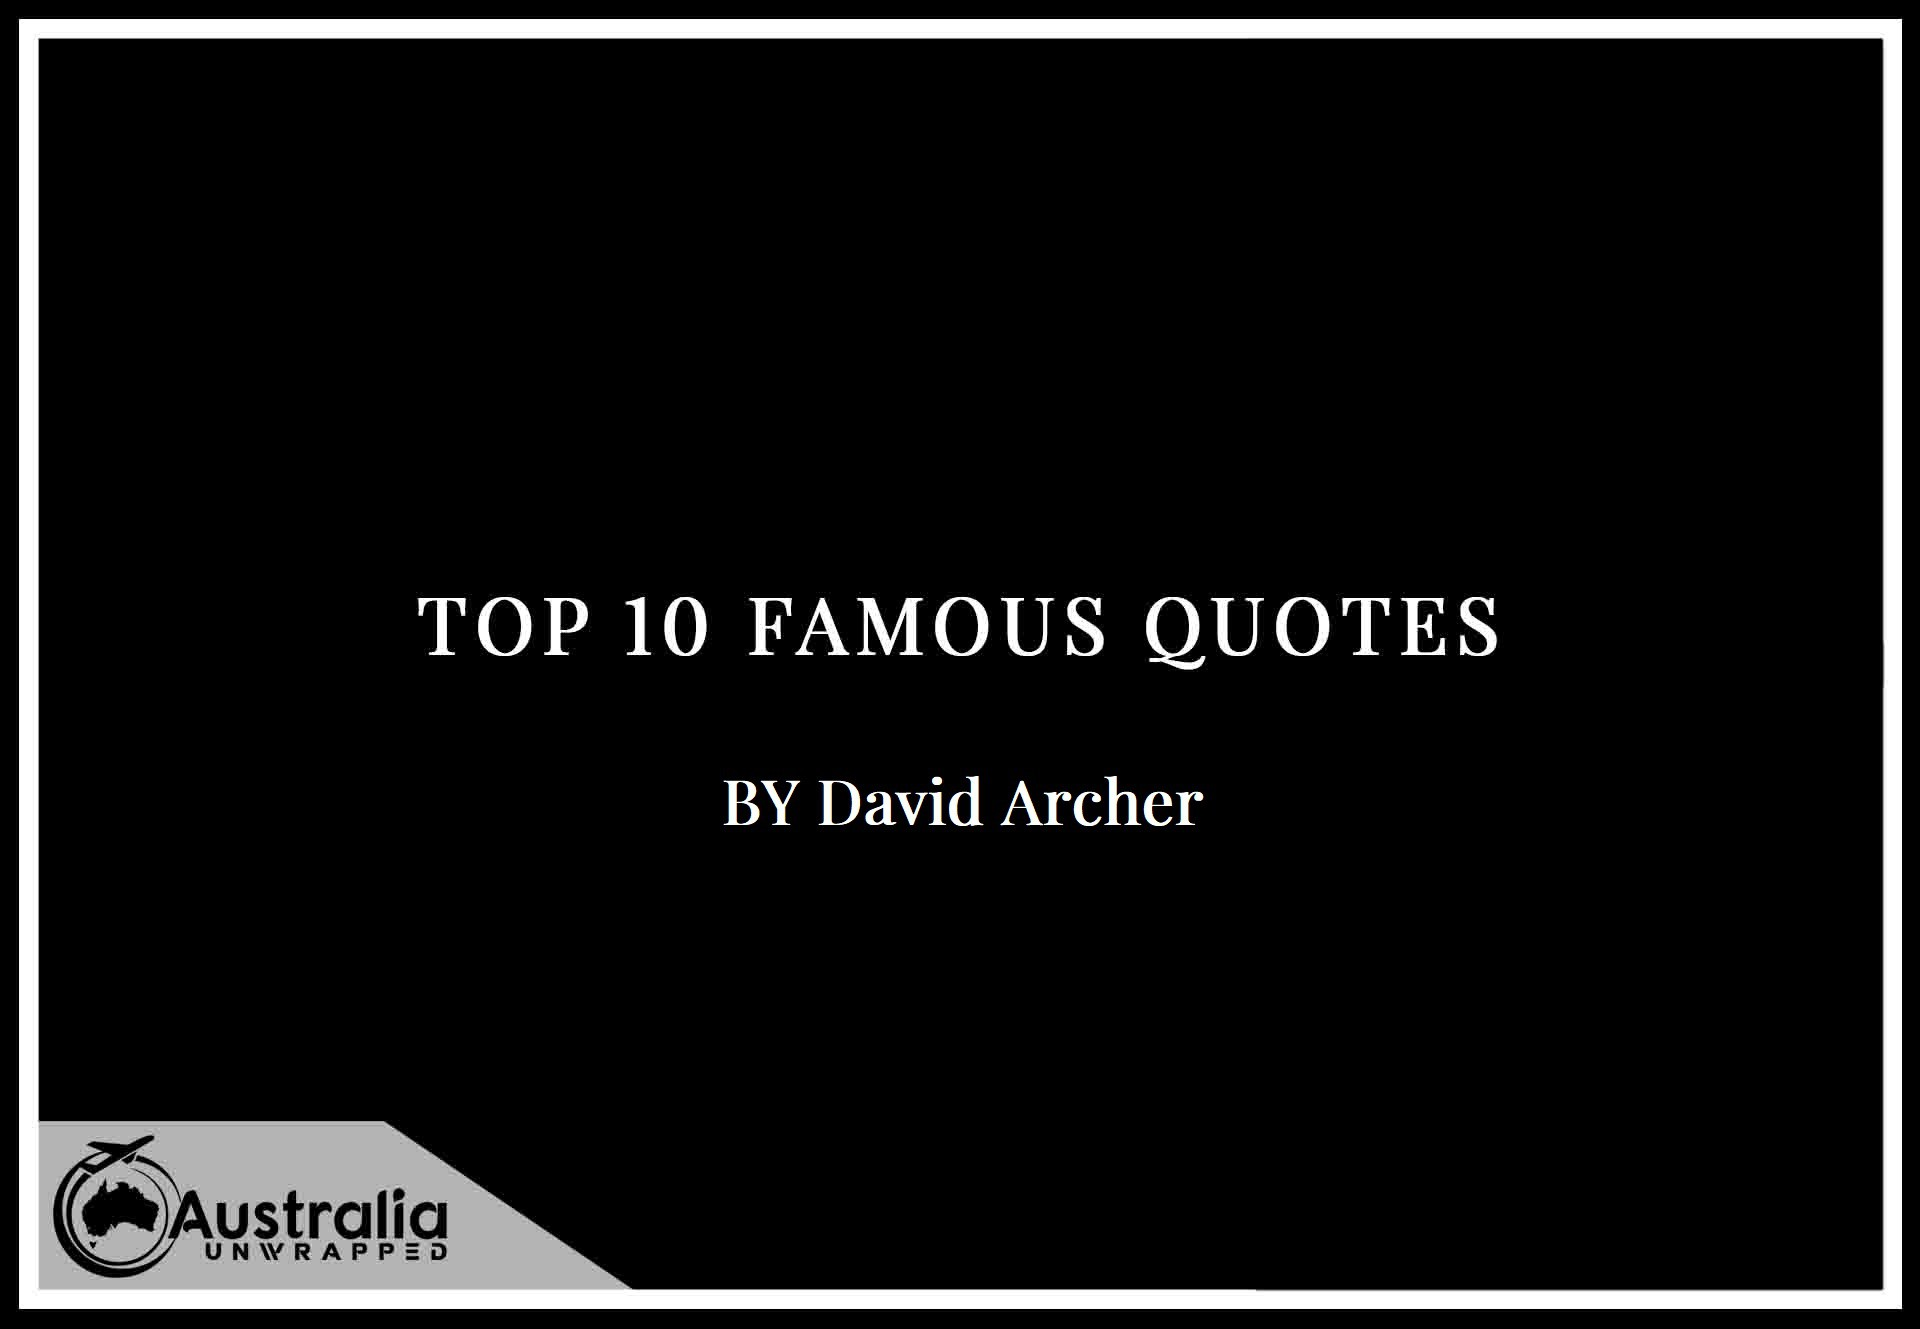 Top 10 Famous Quotes by Author David Archer